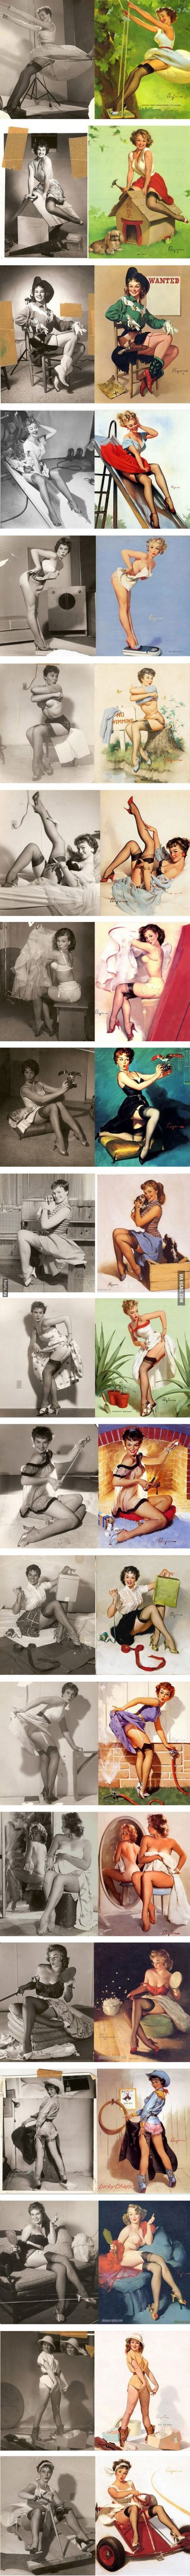 Pinups and their models